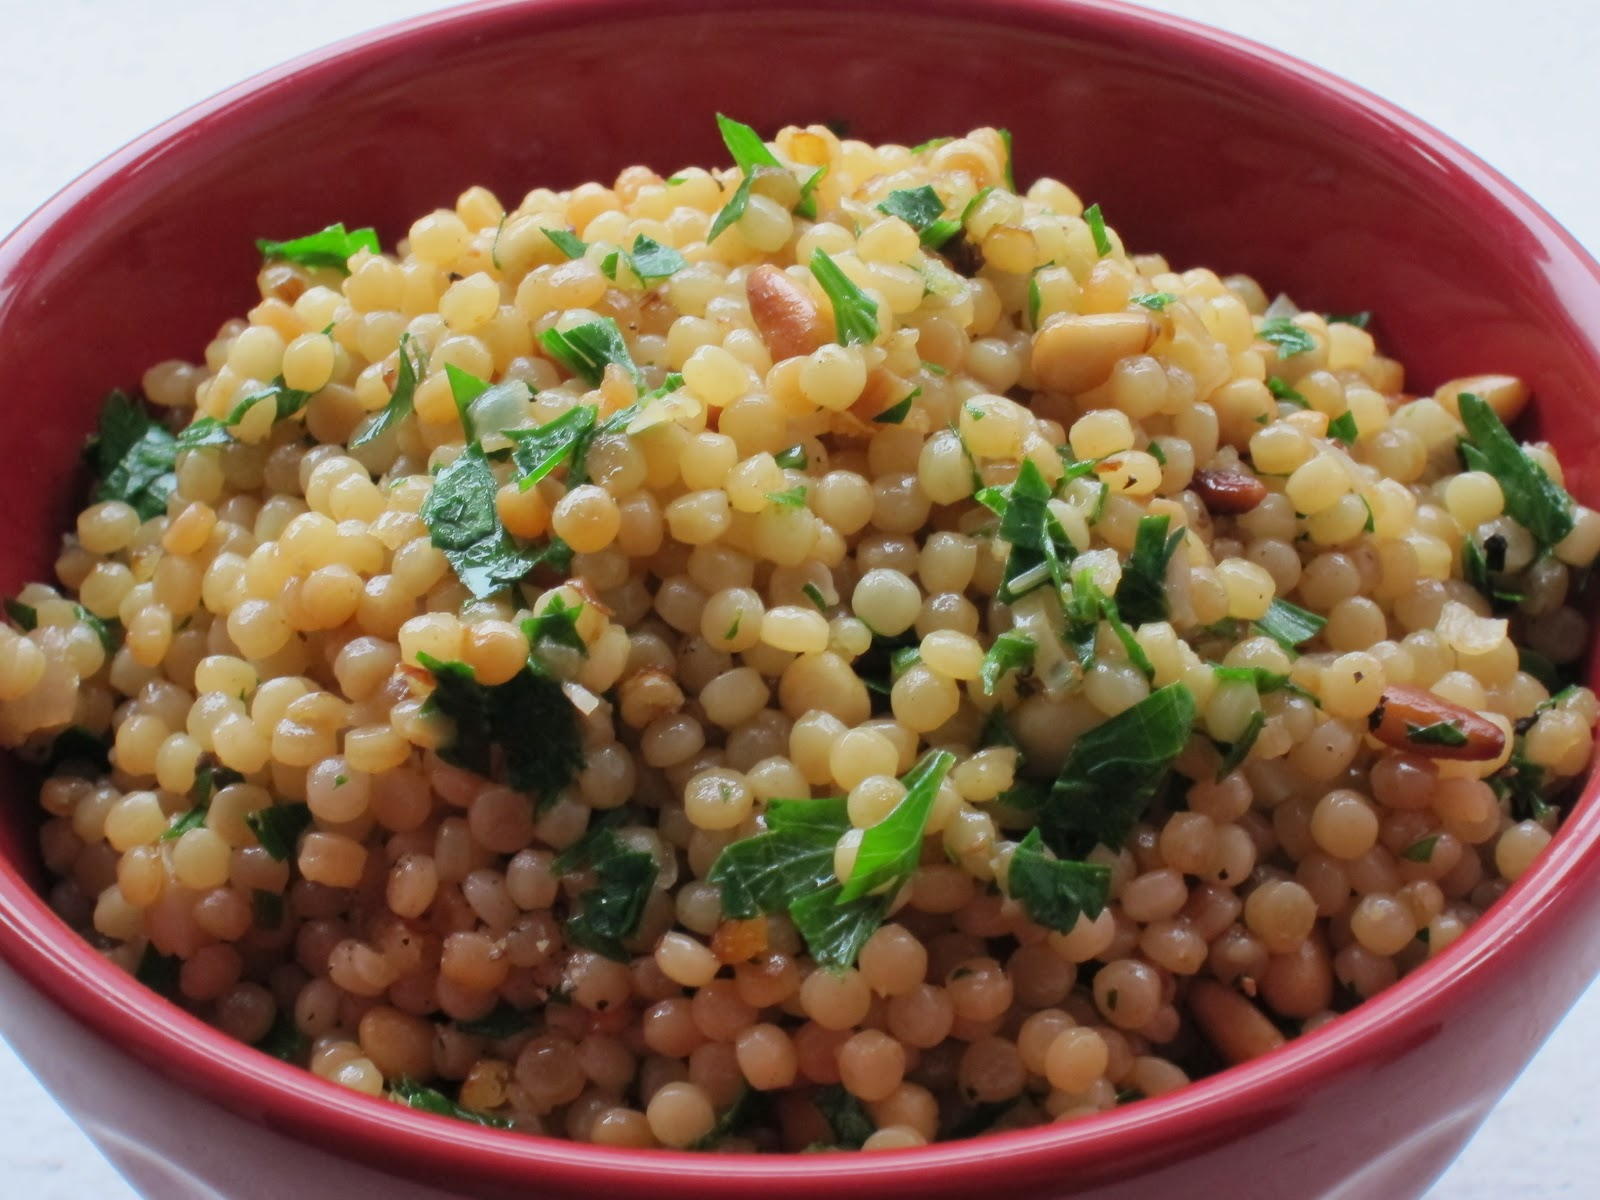 Slice of Rice: Toasted Israeli Couscous with Pine Nuts and Parsley